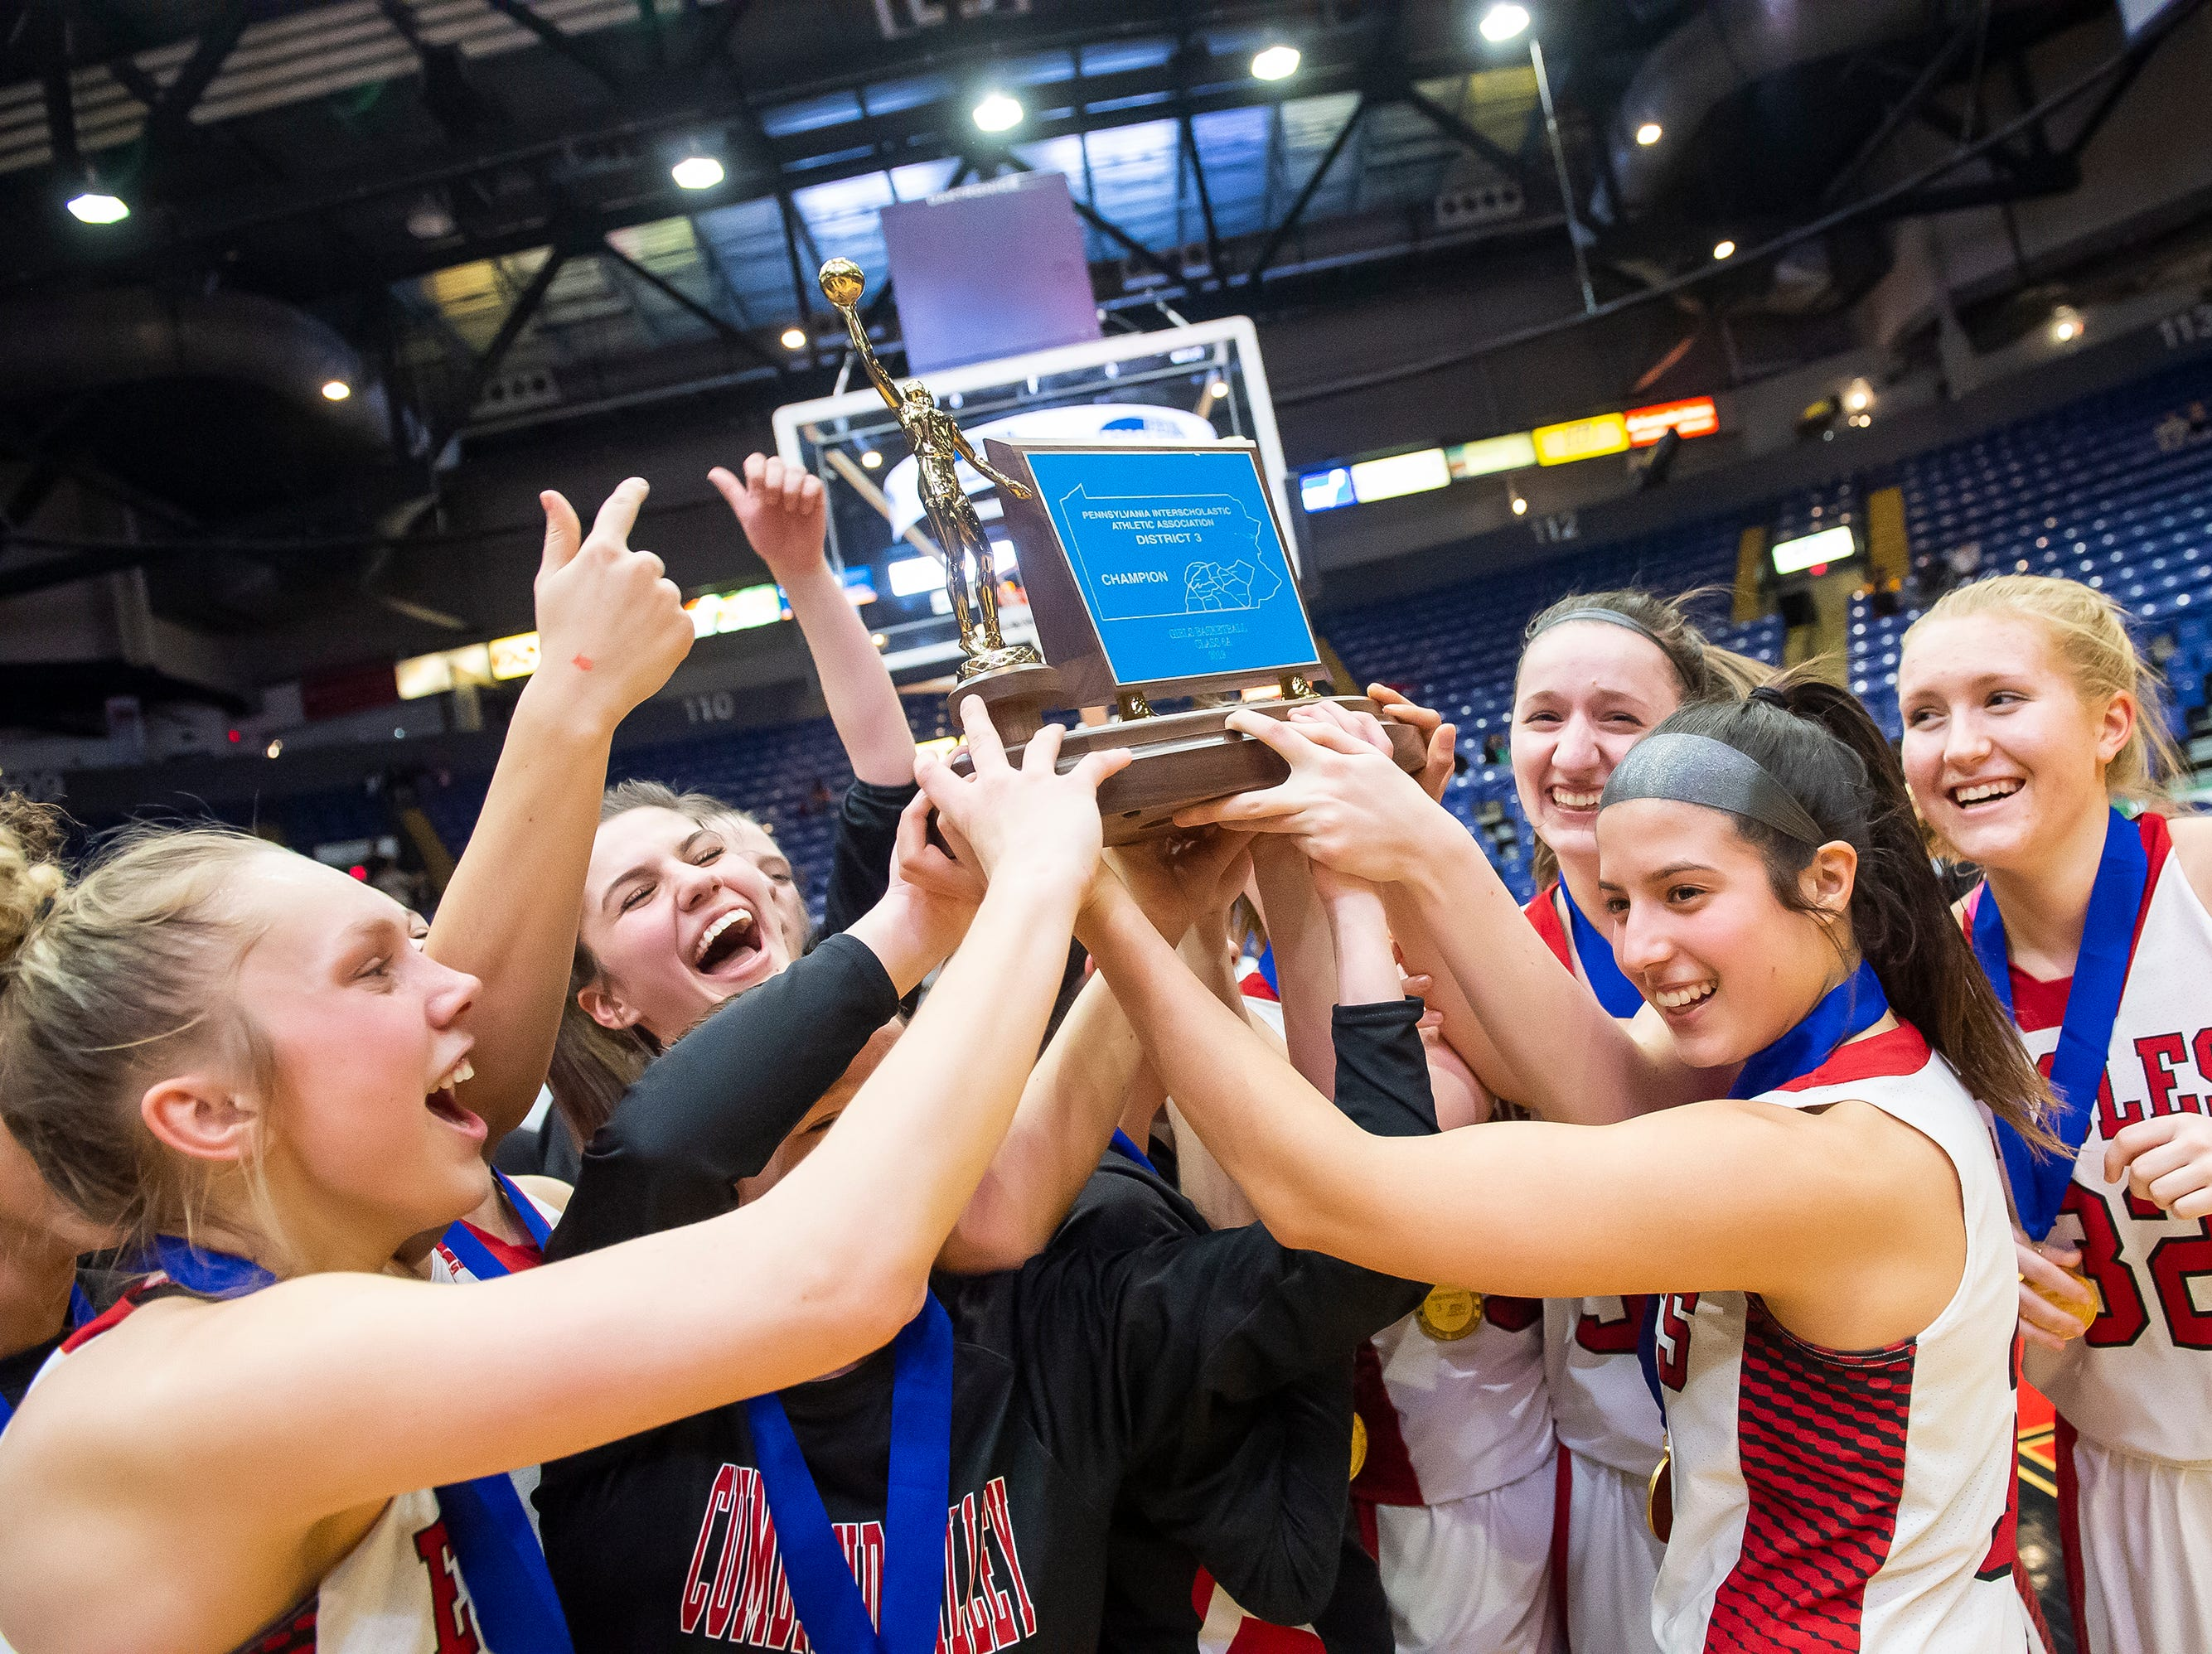 The Cumberland Valley Eagles celebrate with their trophy after defeating Dallastown in the District 3 6A girls championship game at Santander Arena in Reading, Pa., Friday, March 1, 2019. The Eagles won 33-27.